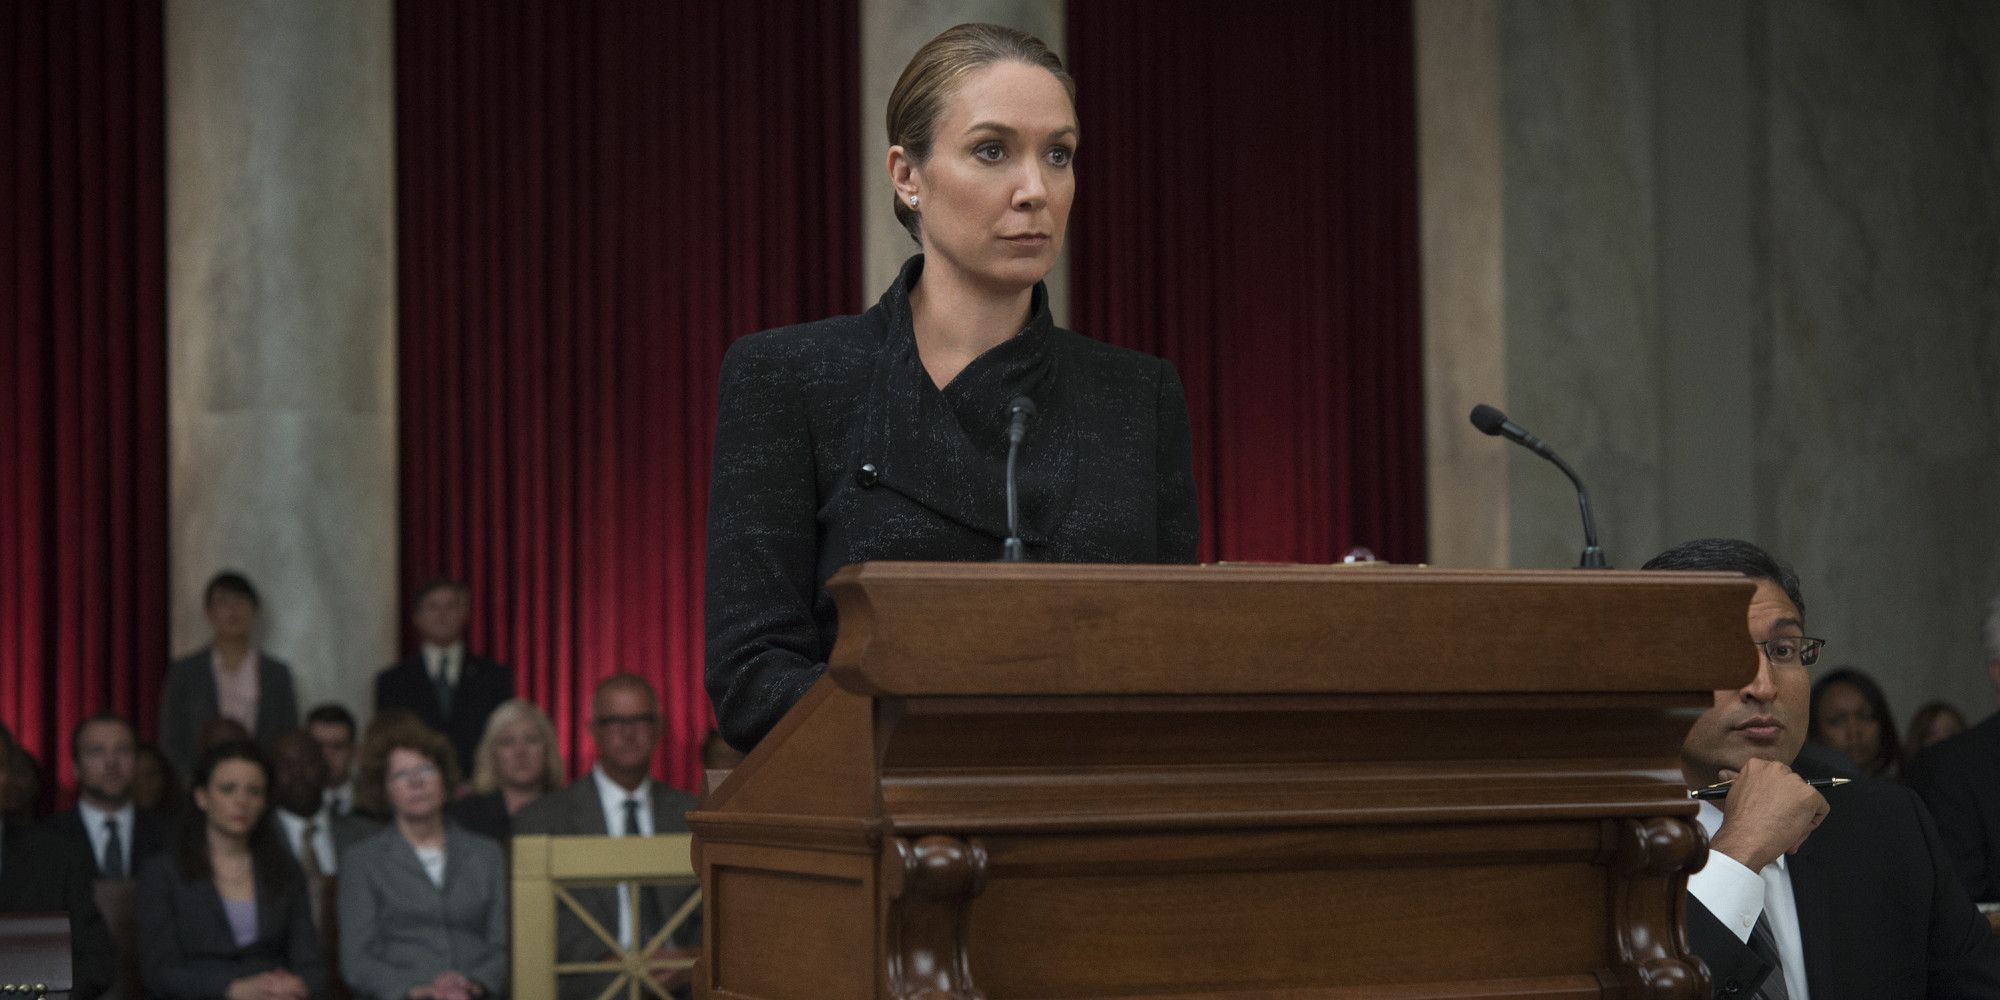 Frank S Biggest House Of Cards Foe Was Modeled On The Clintons Heather Dunbar House Of Cards Elizabeth Marvel